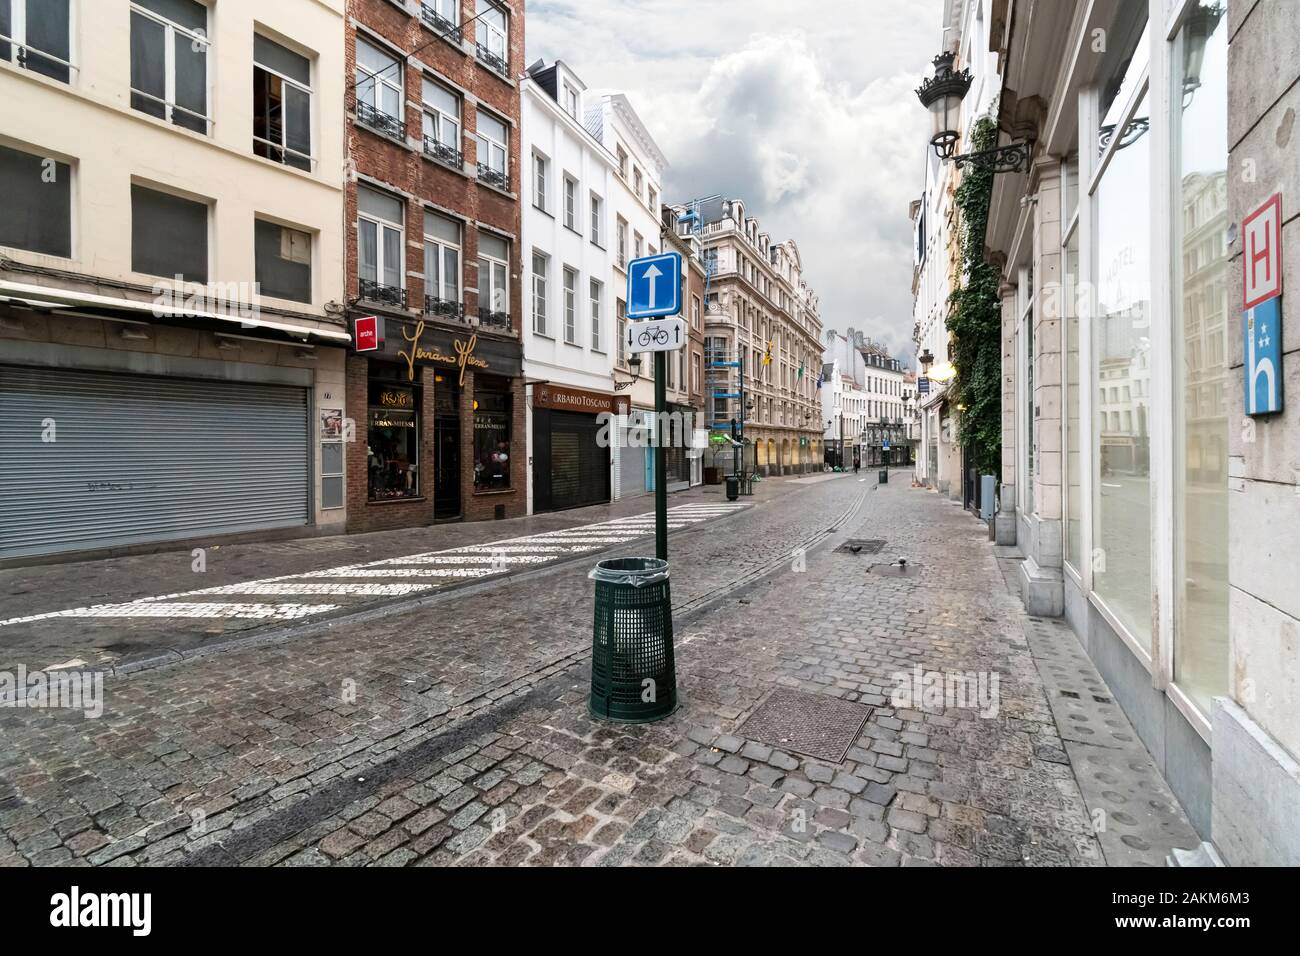 An empty street in the historic center of Brussels, Belgium on an overcast rainy morning. Stock Photo